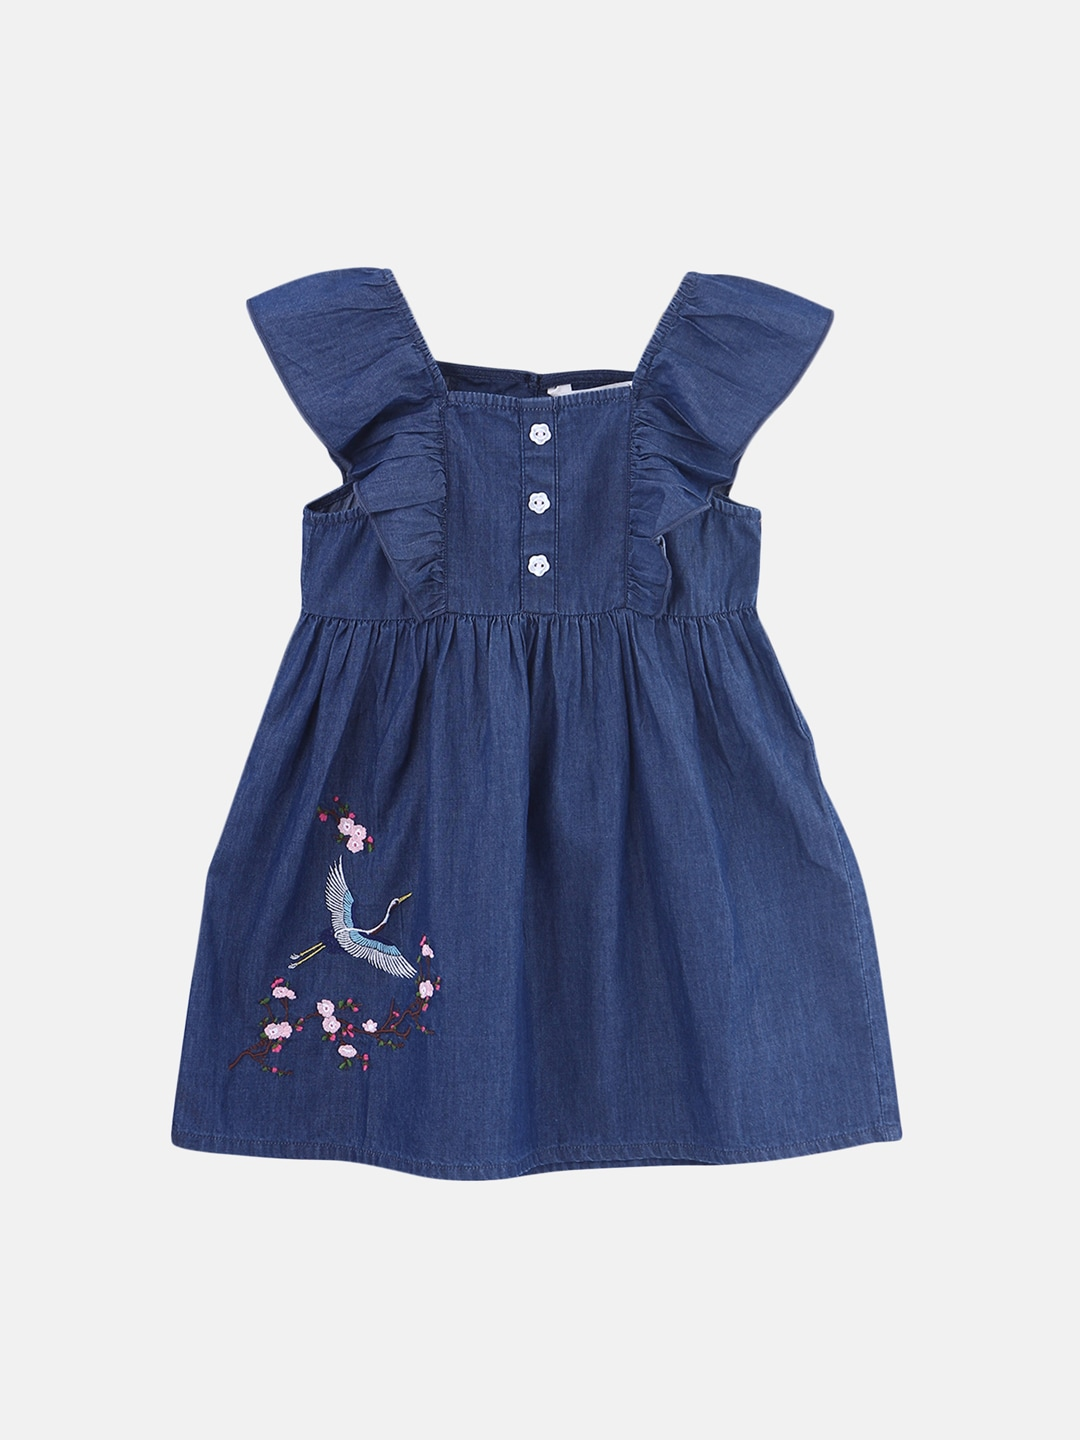 My Junior Miyo Ebay Beebay Girls Blue Solid Denim Empire Dress